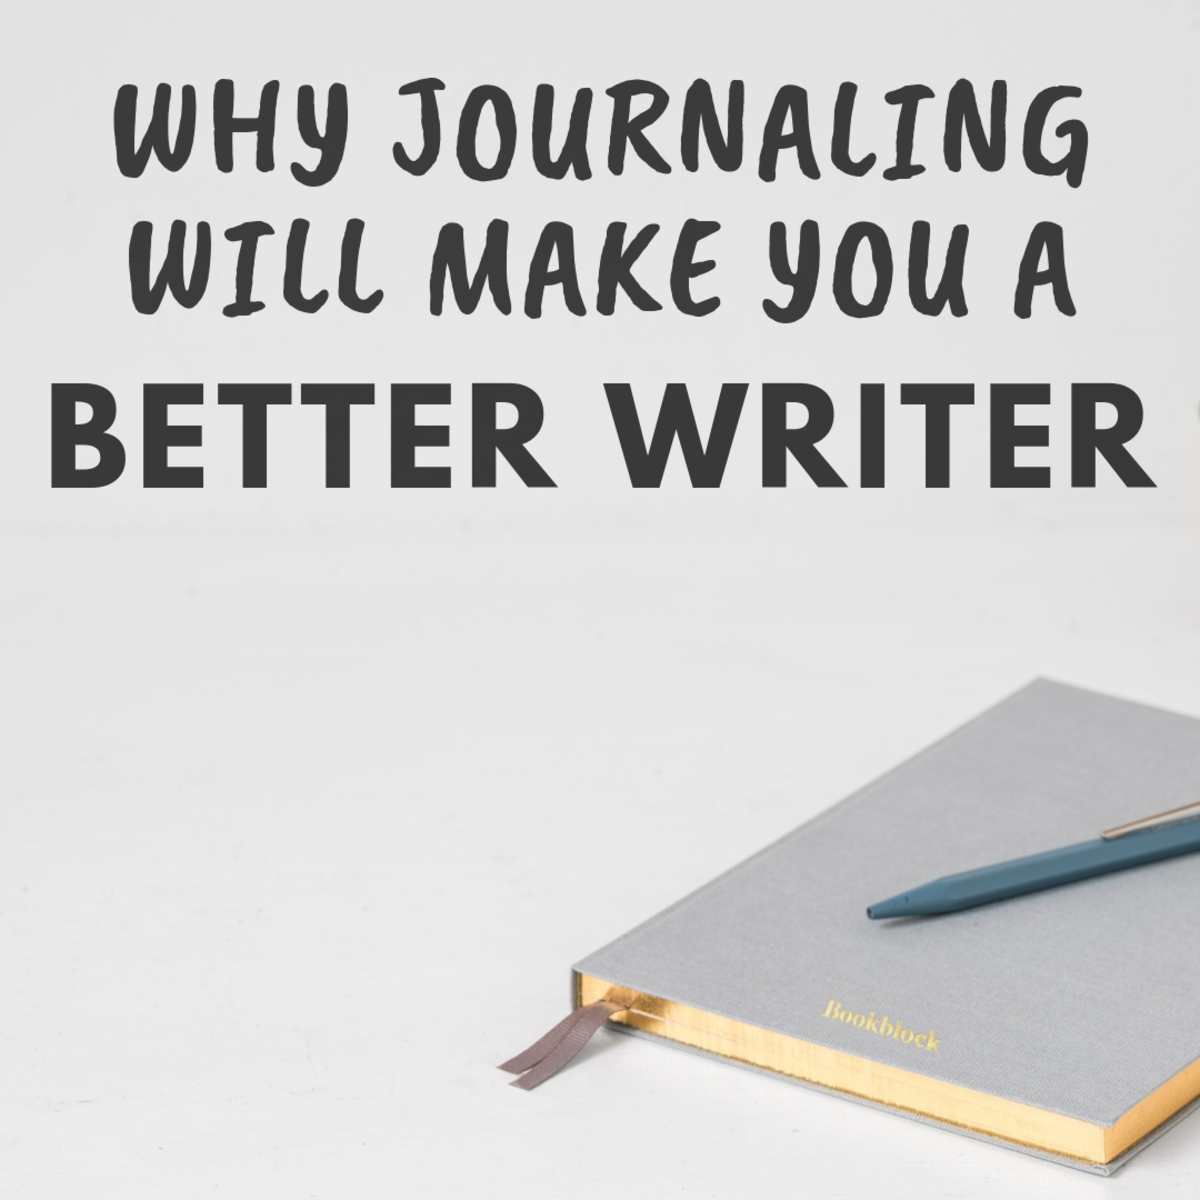 Why Keeping a Journal Will Make You a Better Writer